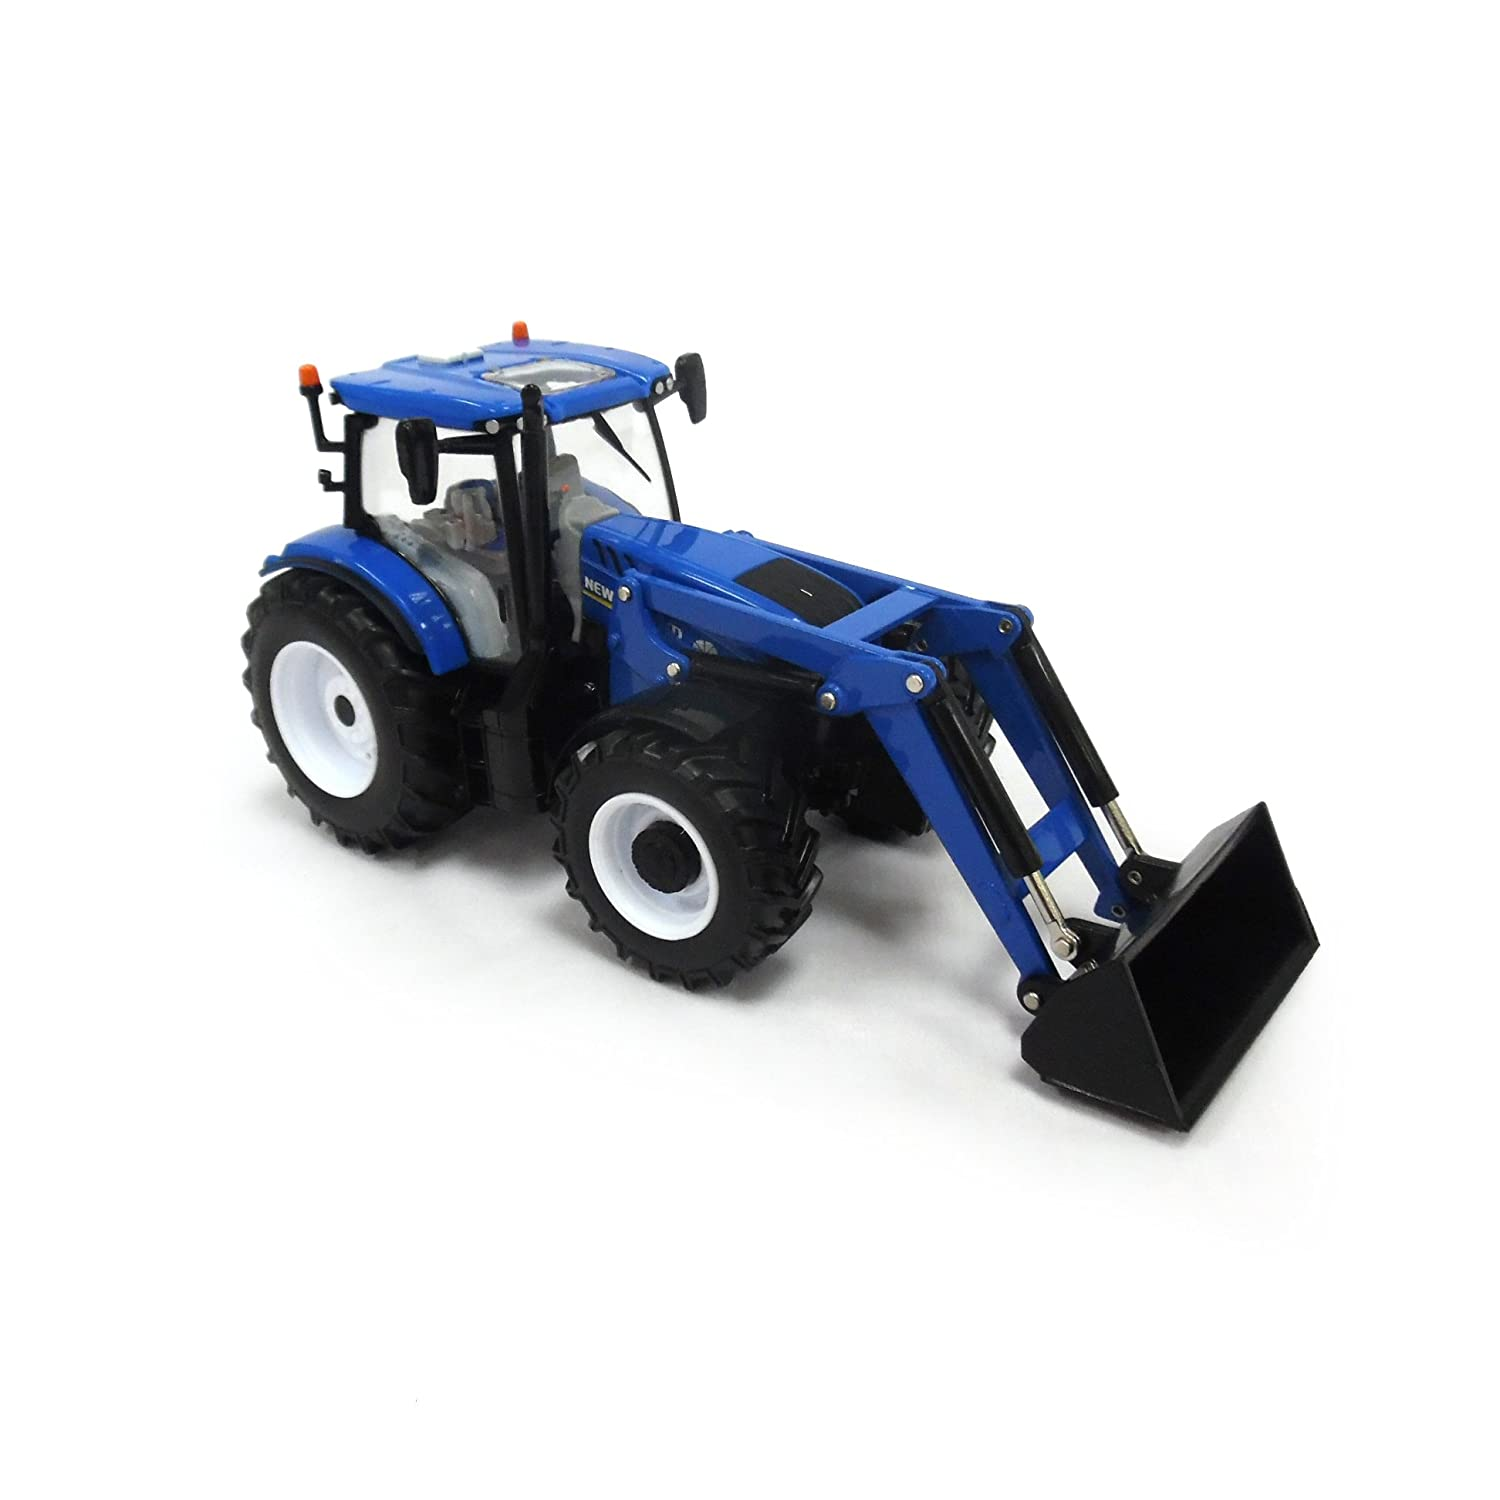 'Britains 1:32 New Holland Replica LM7.42 Telehandler Collectable Farm Toy TOMY 43085A1